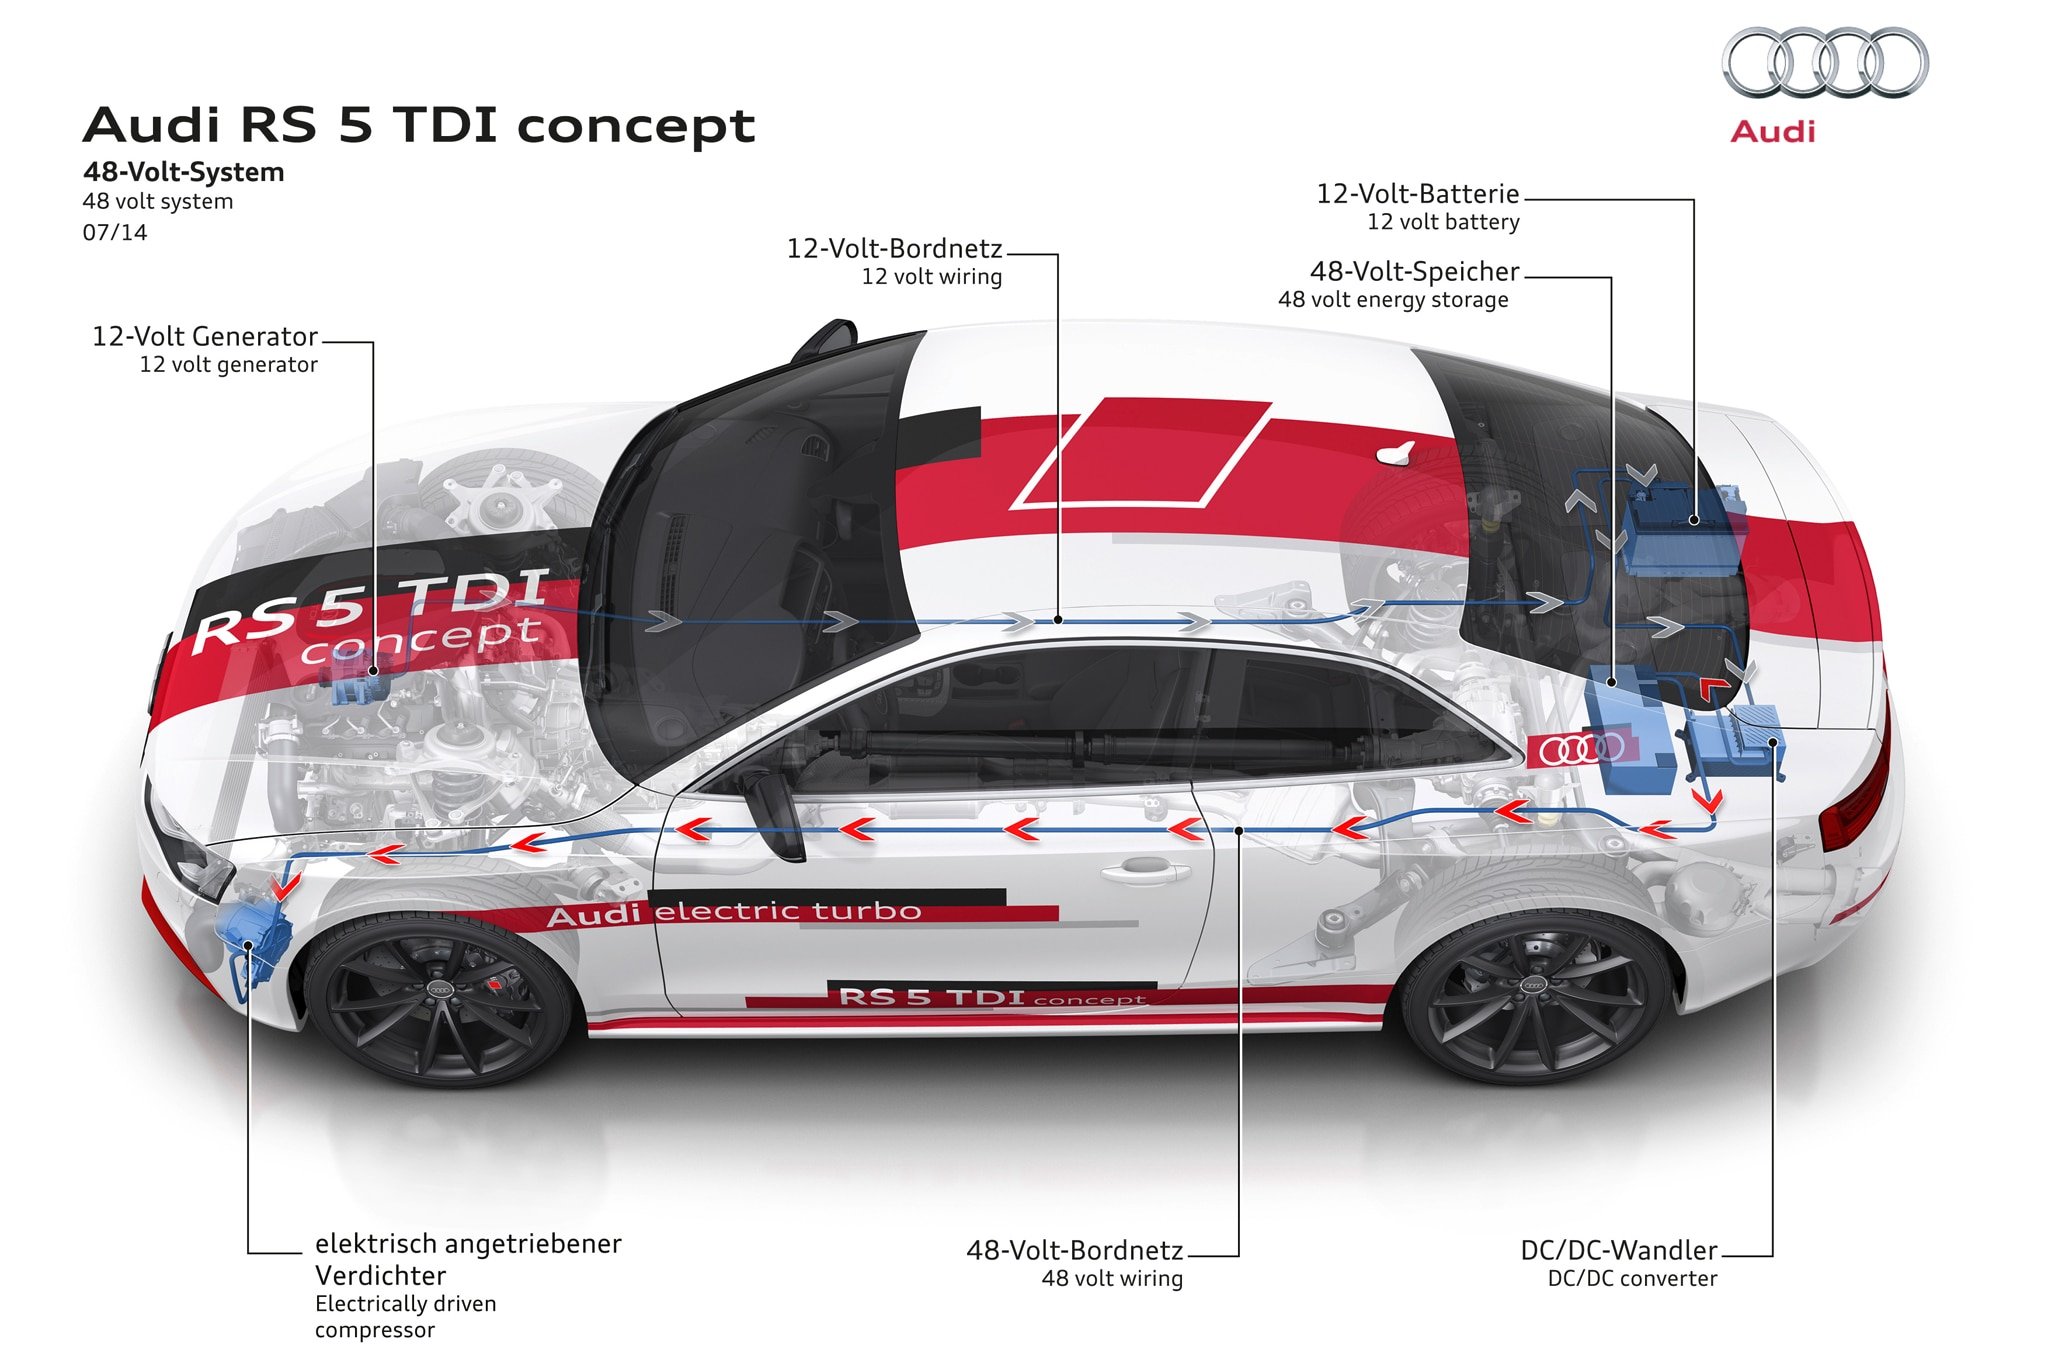 Audi RS S TDI Concept Top View